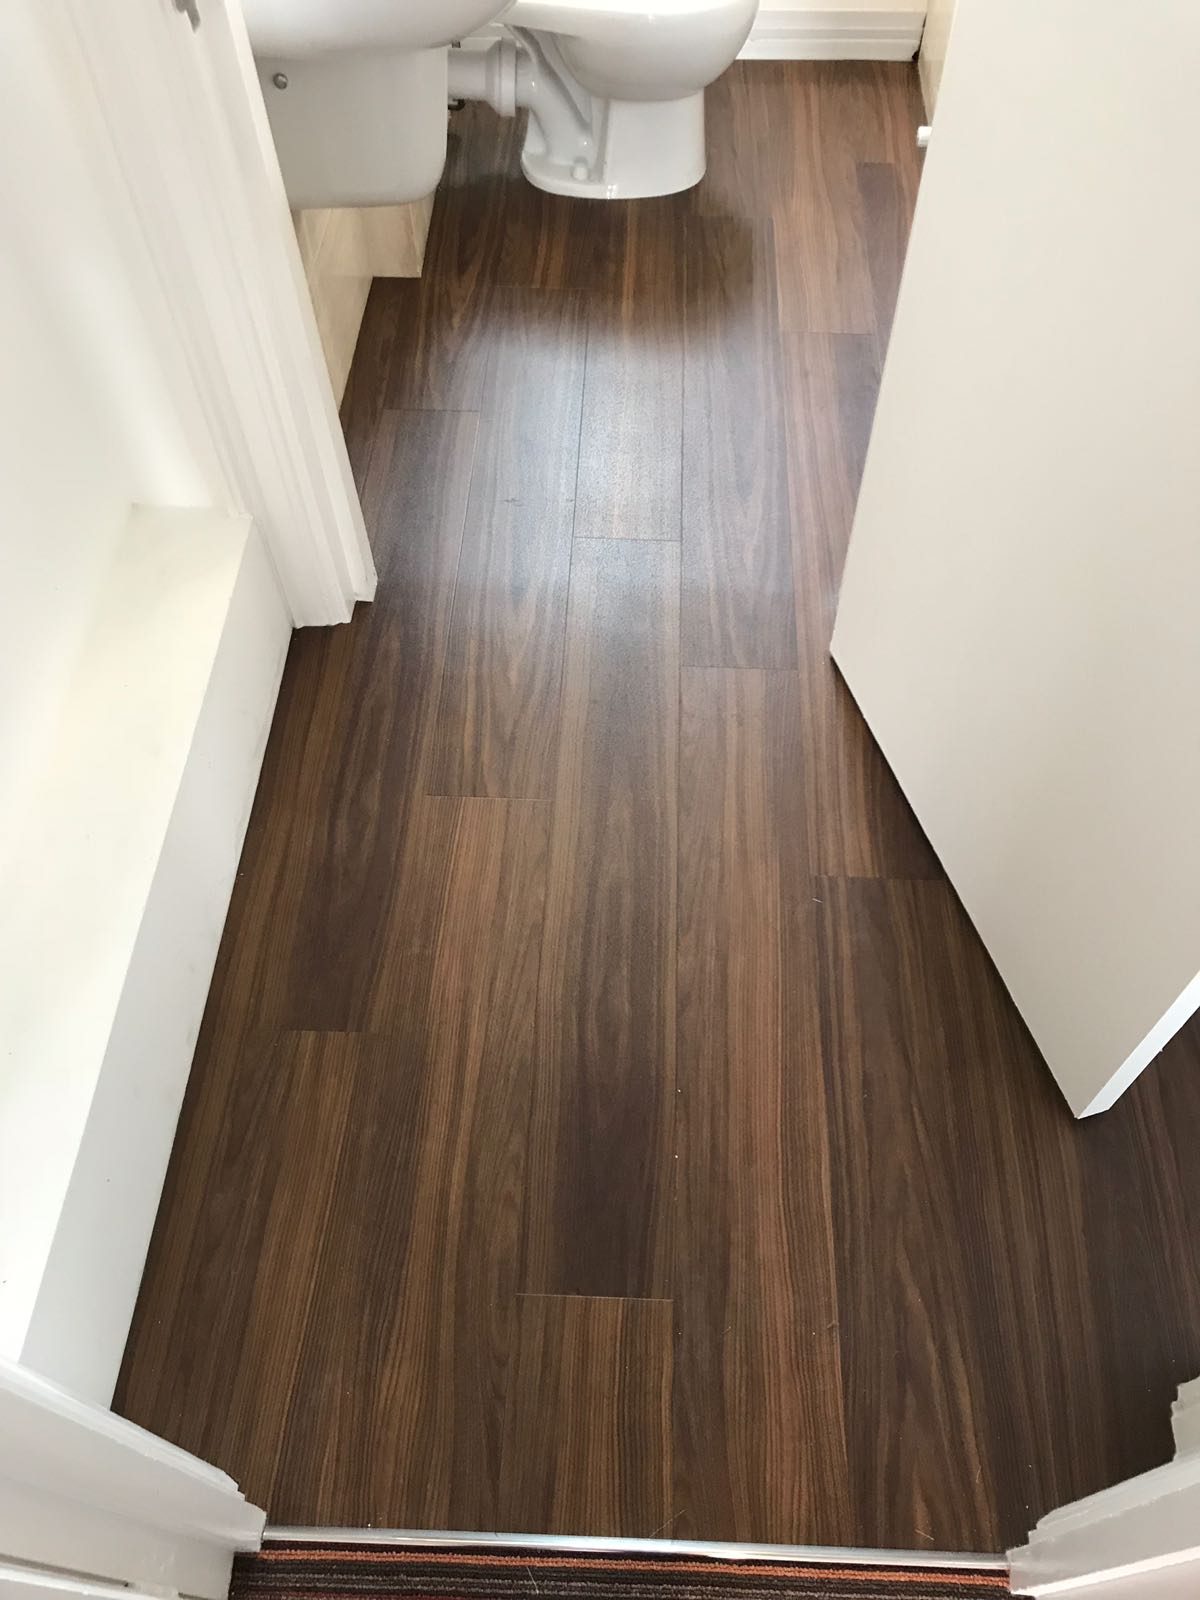 2018-04-24_Amtico Flooring Installed In Chelsea Residence (2)